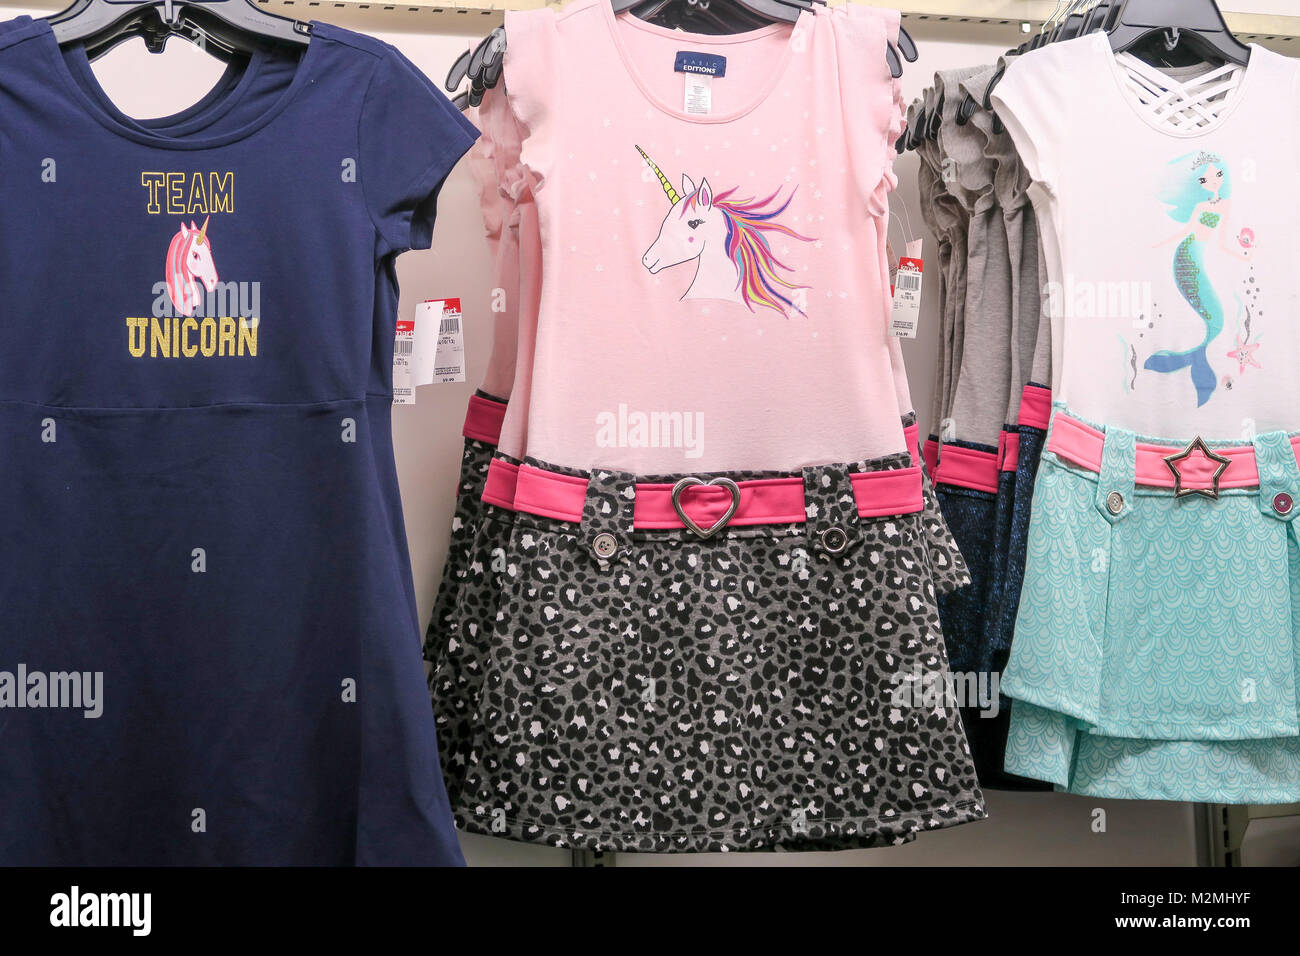 New Clothes Dresses Imágenes De Stock & New Clothes Dresses Fotos De ...